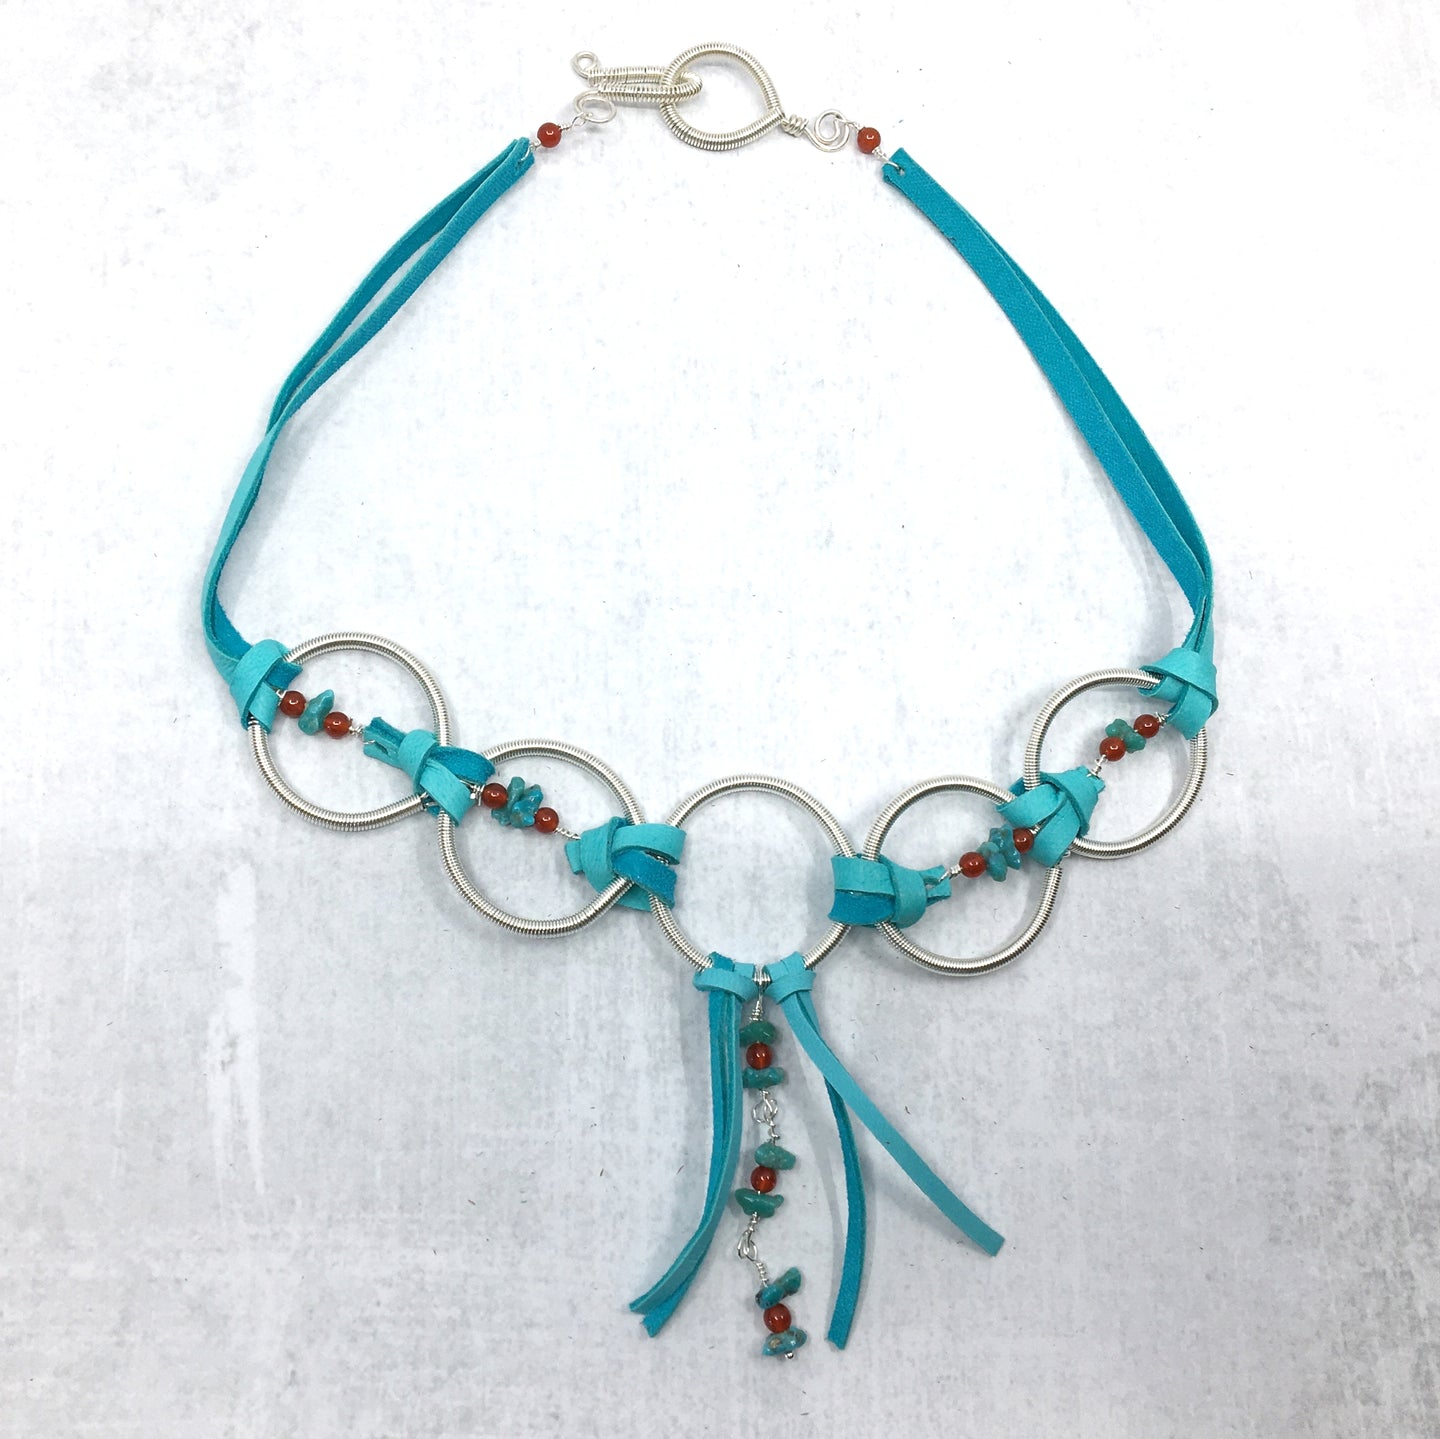 Turquoise, Turquoise Deer Leather, Coiled Silver Statement Necklace - Buckaroo Bling